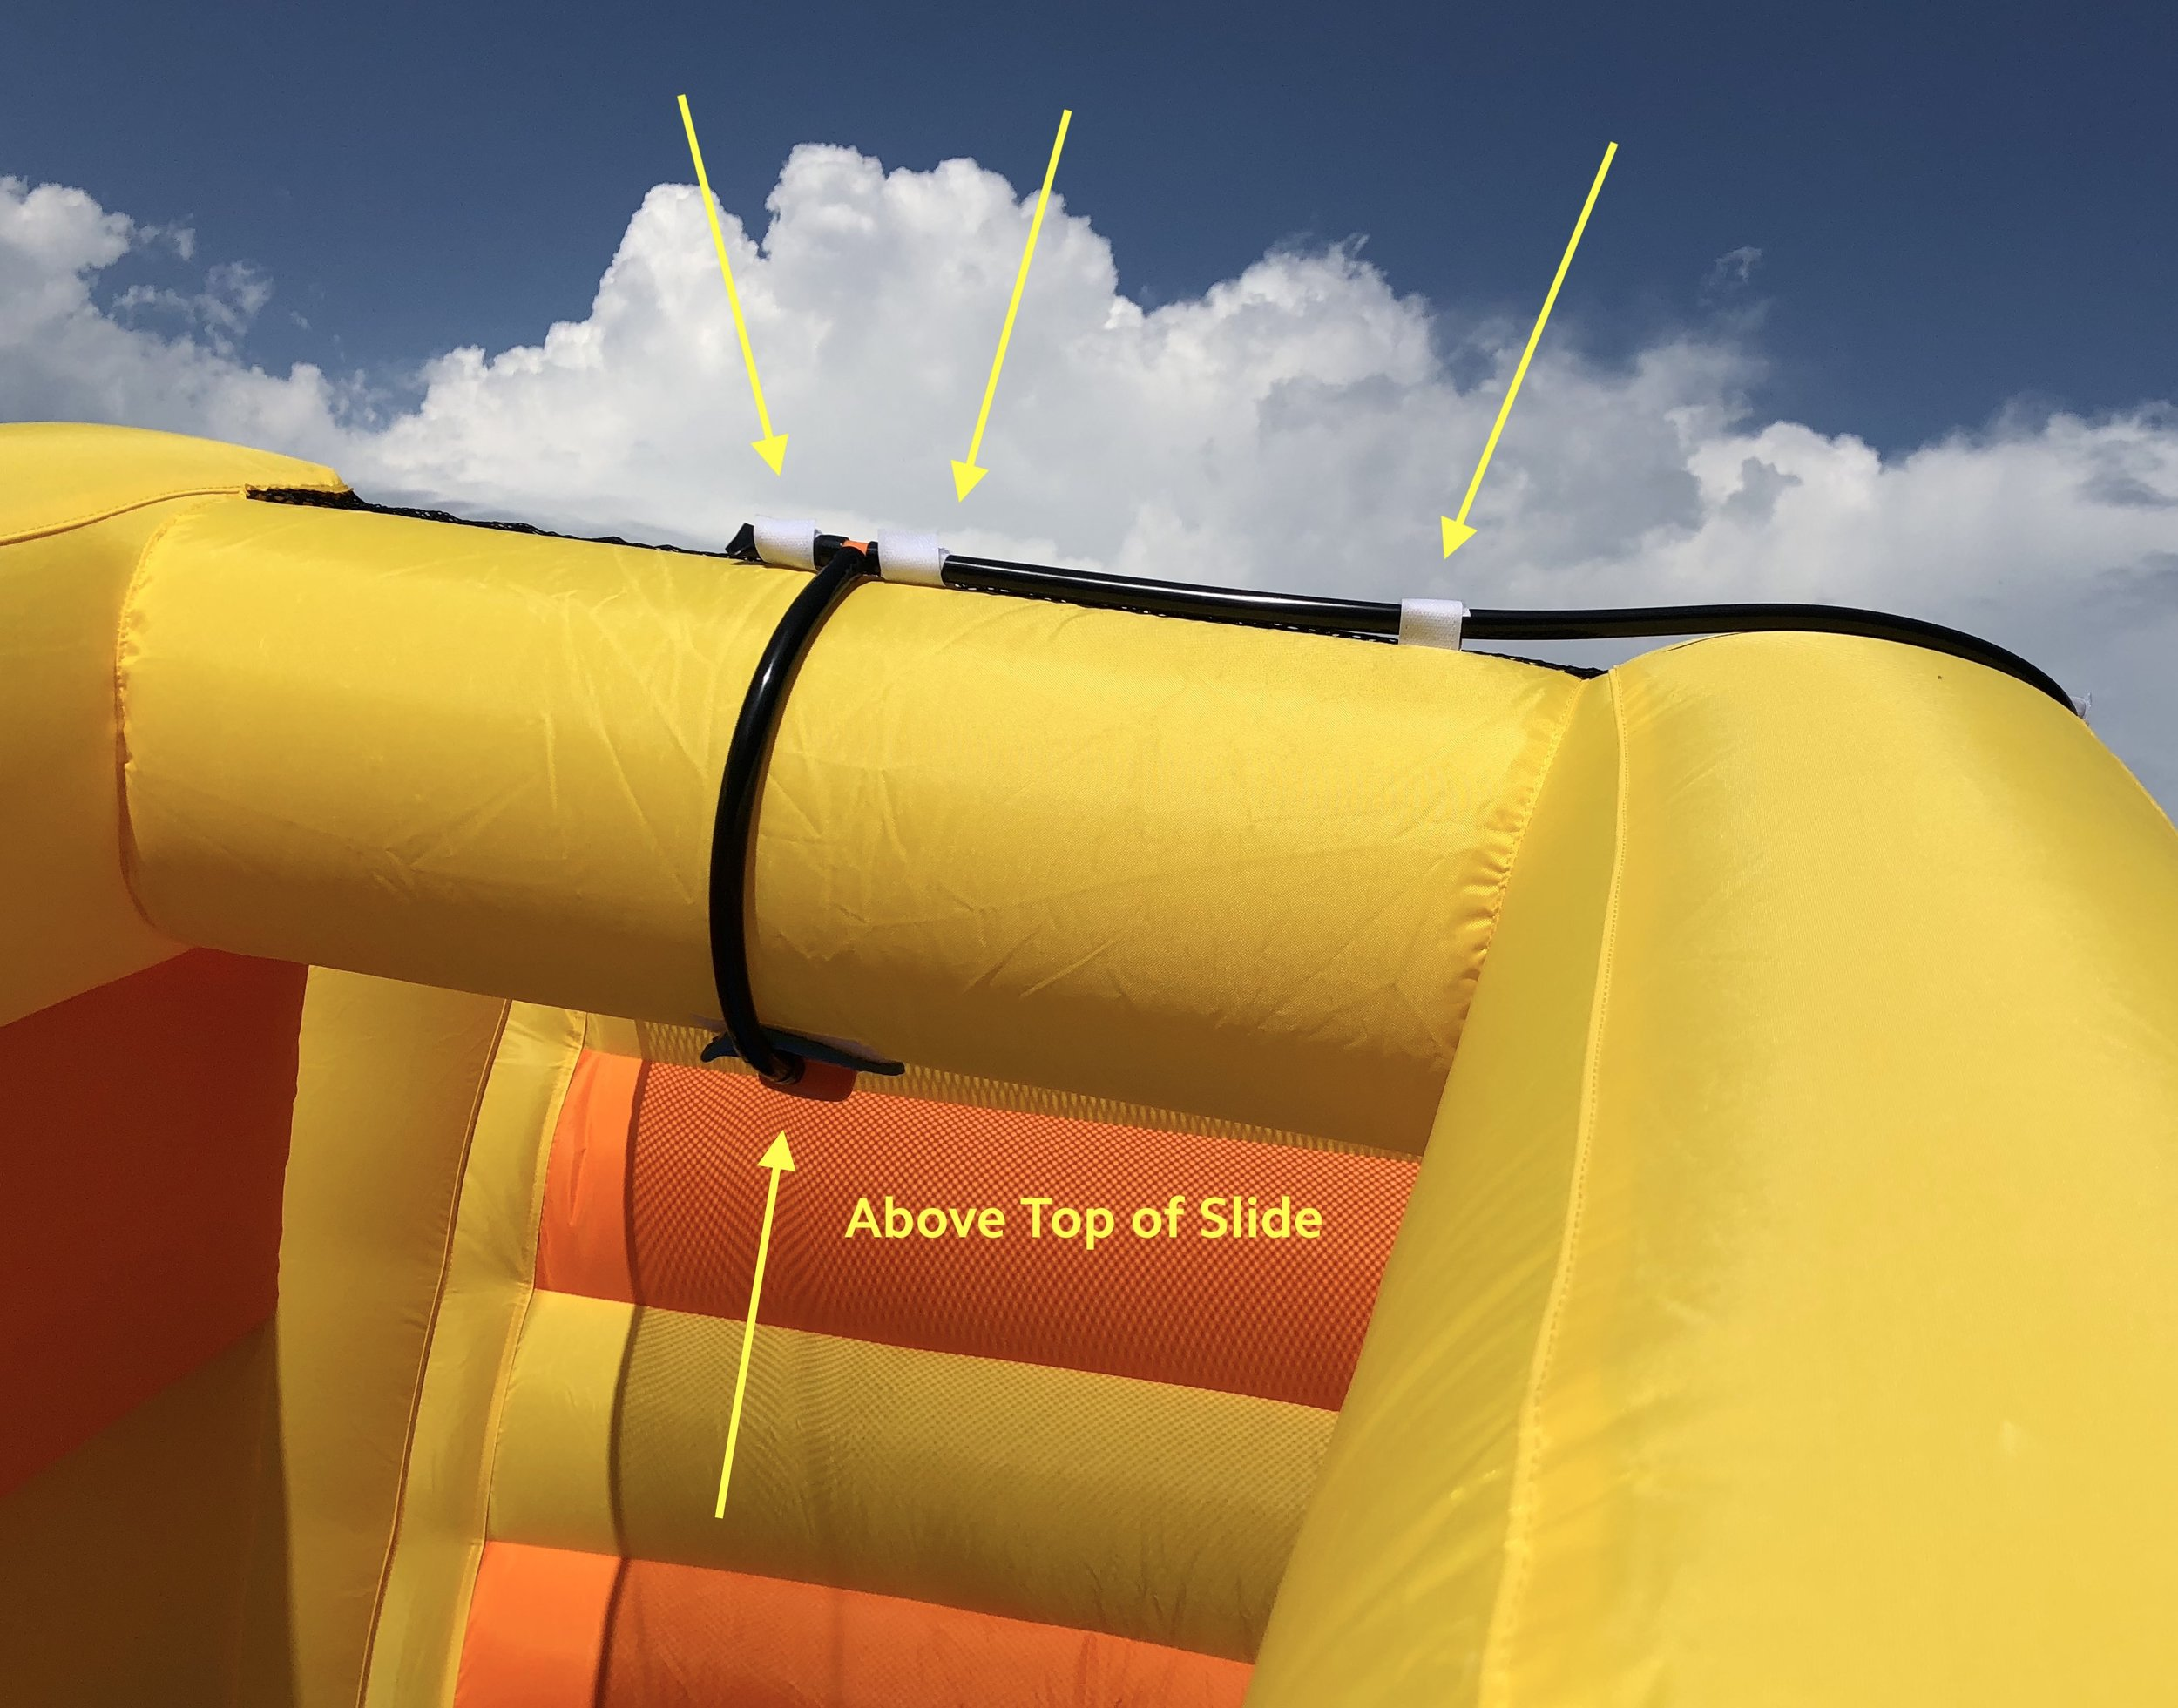 8d. Continue attaching hose around the front of the right slide.  Attach the sprinkler above the top of the right slide using Velcro.  8e. Attach garden hose and gently turn on water (1/2 turn should work).  EXCESS WATER PRESSURE CAN DAMAGE HOSES AND CONNECTORS.